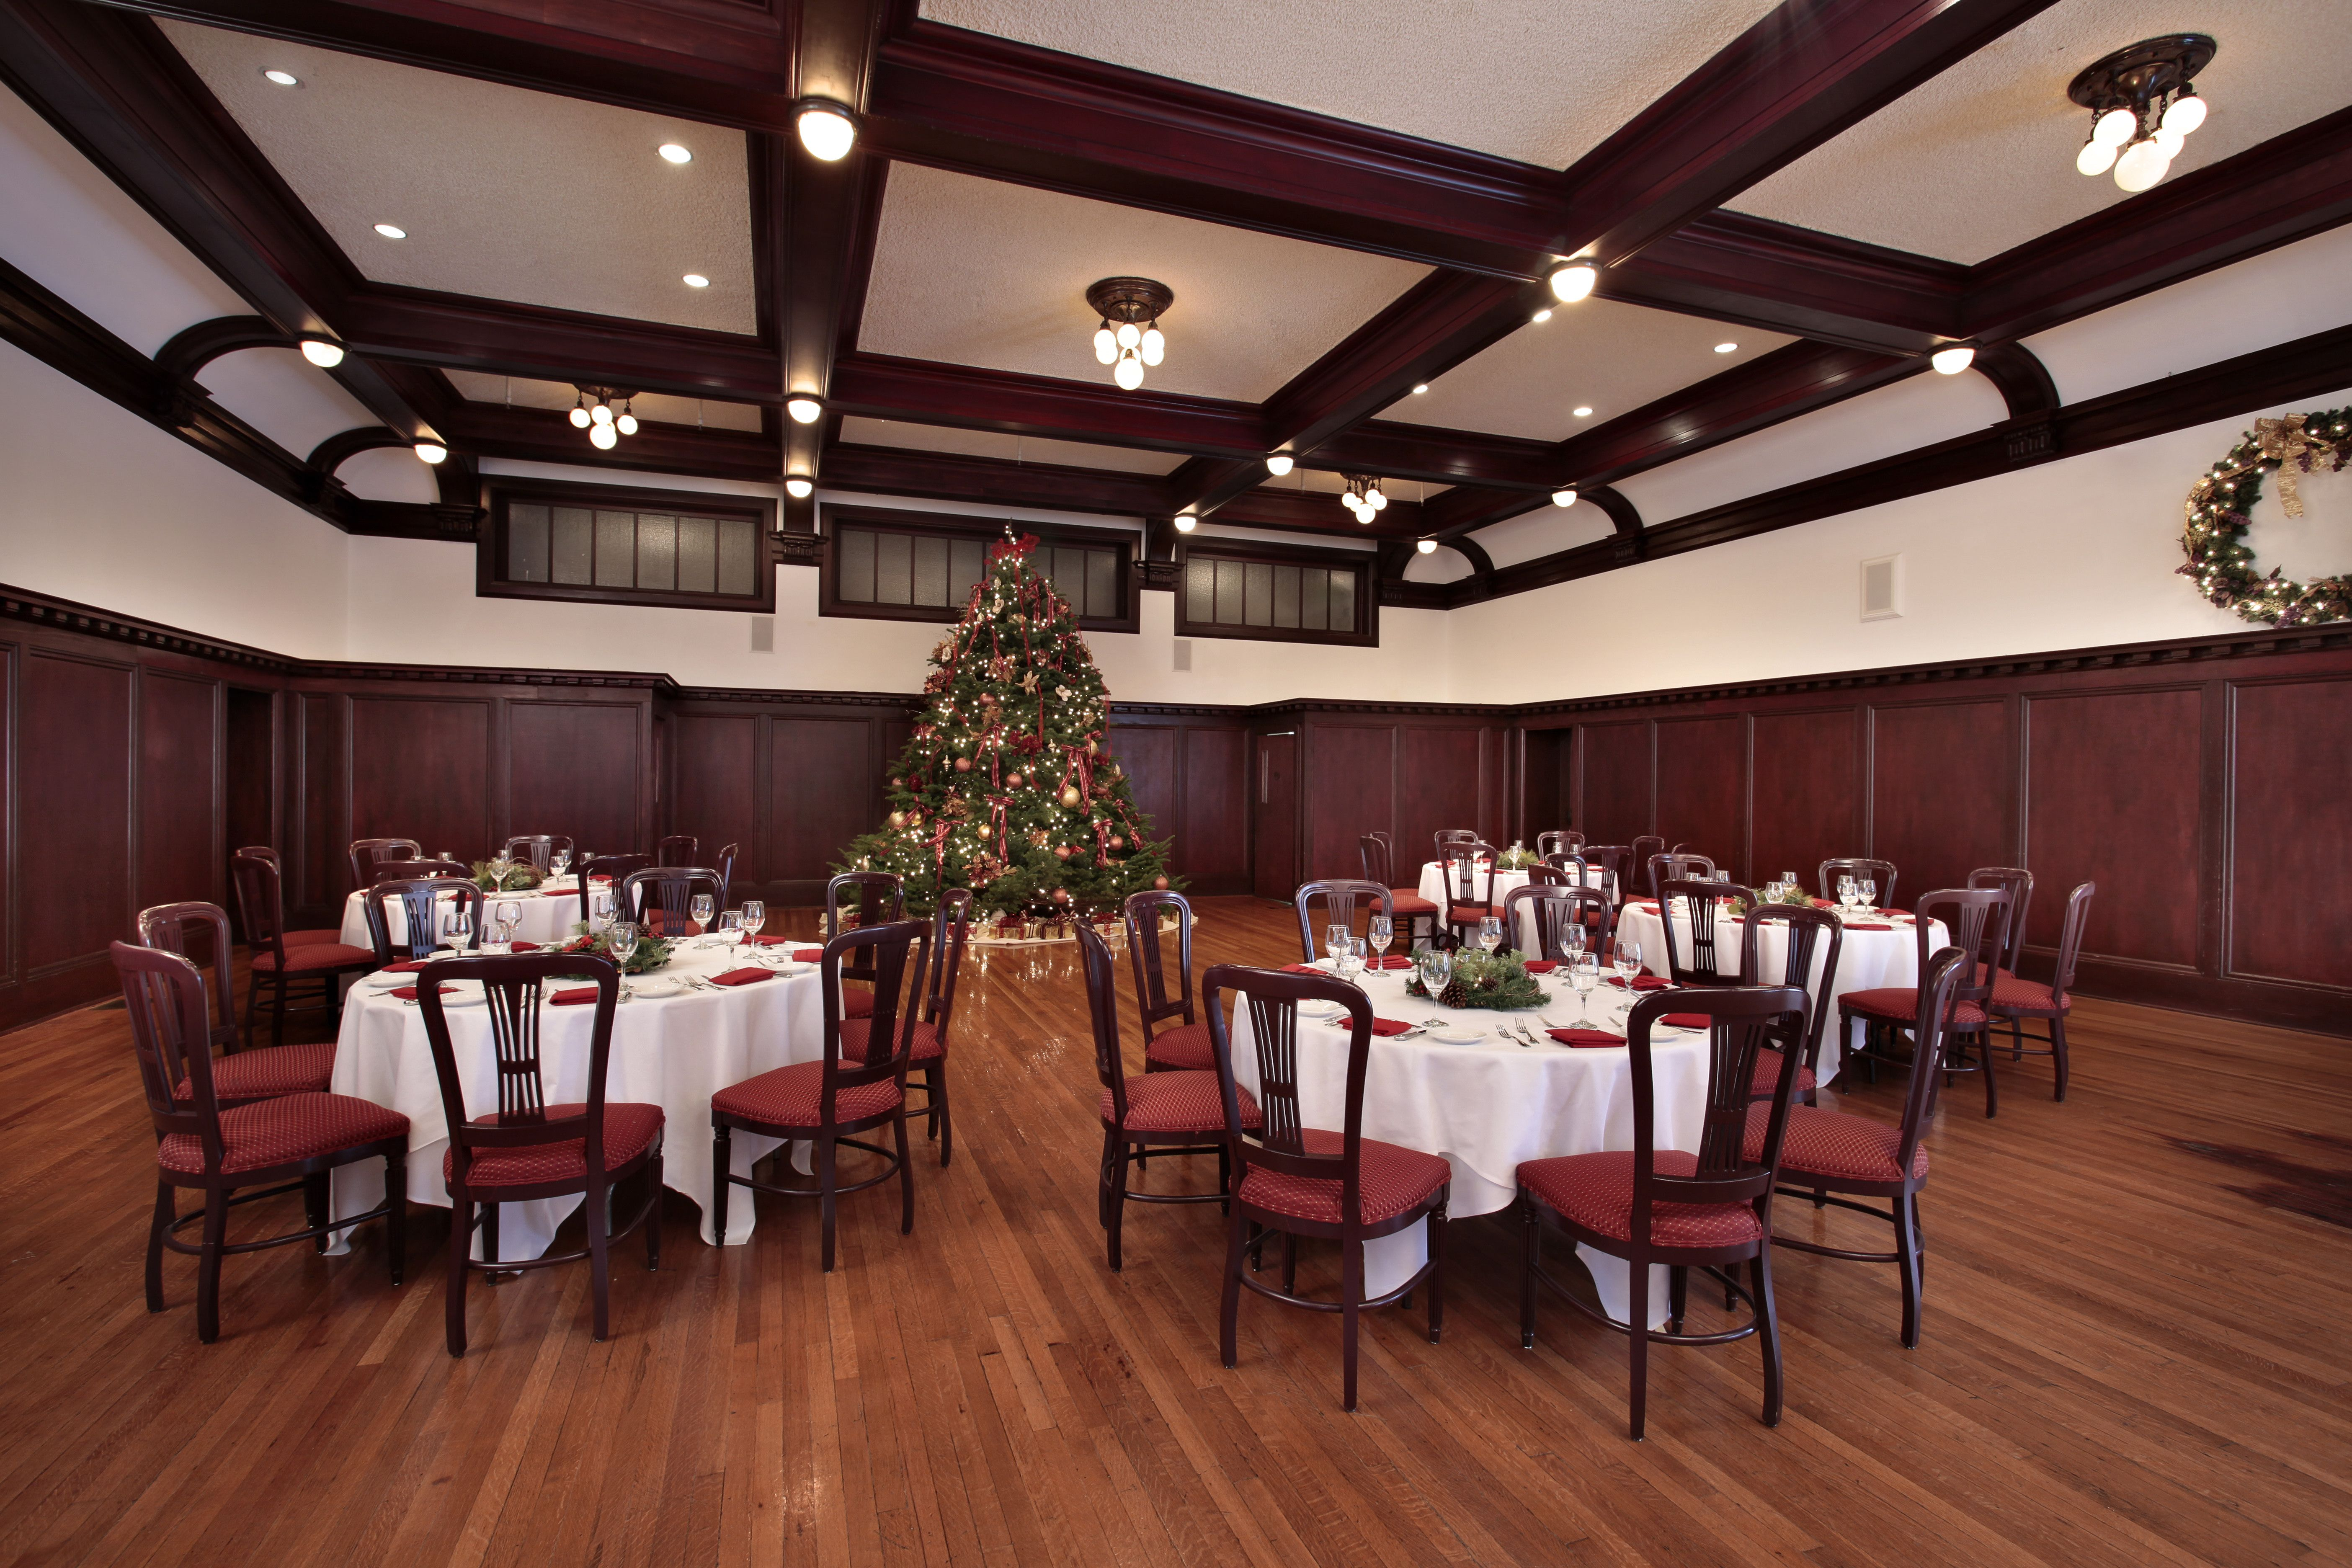 A beautiful Christmas feast awaits at the Paso Robles Inn